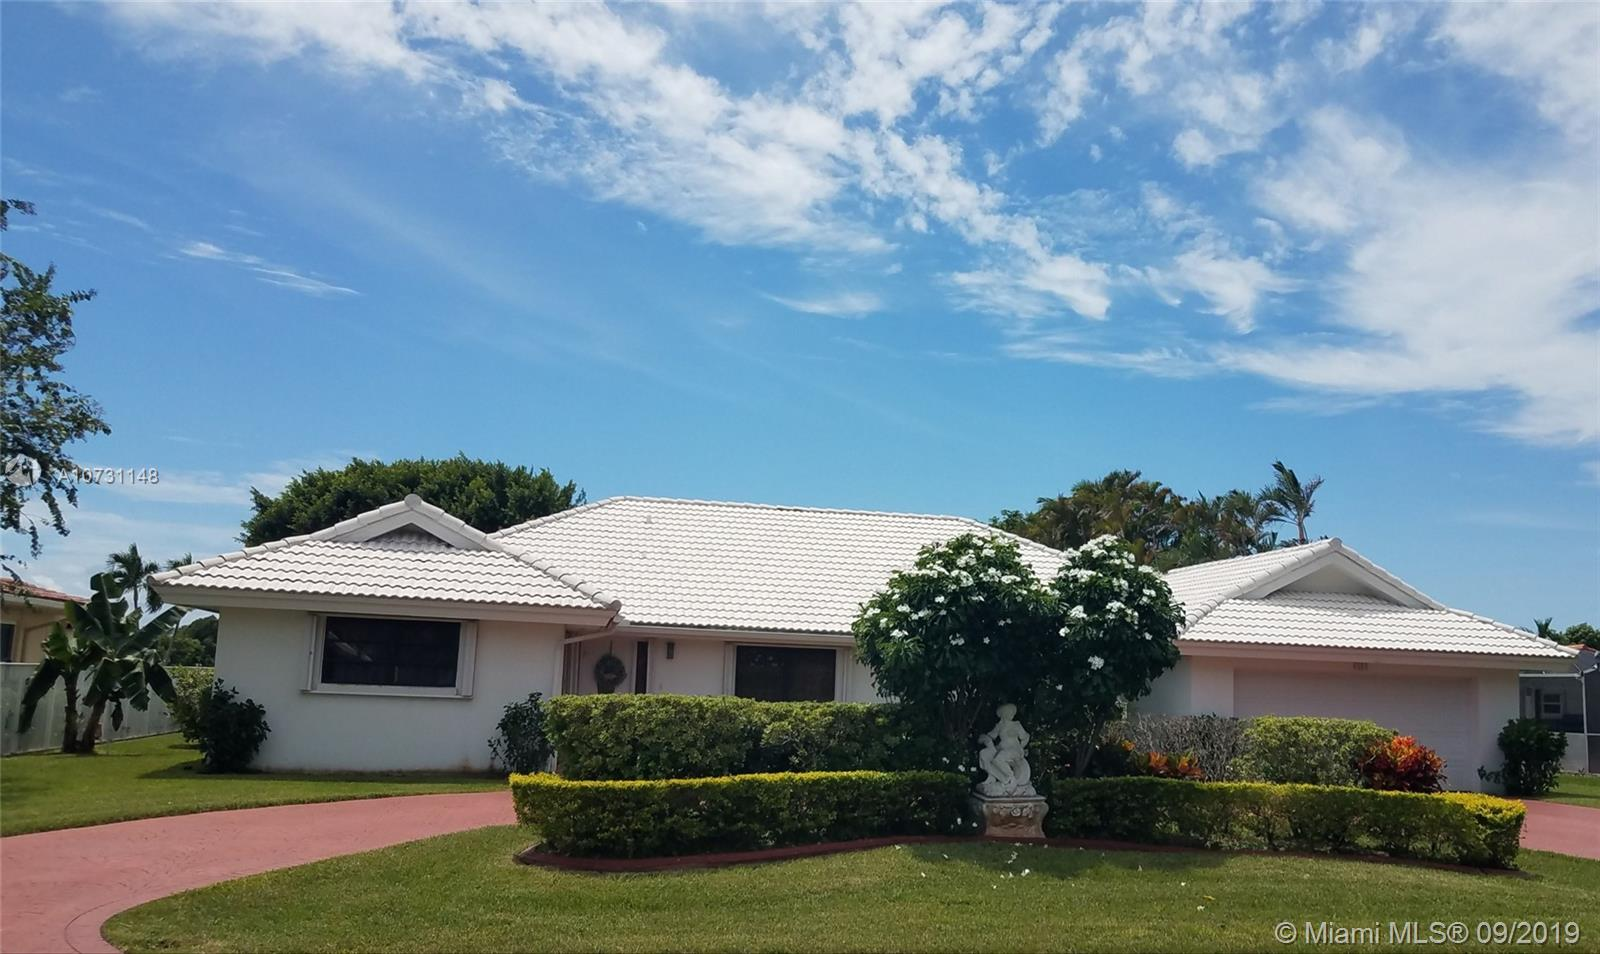 6880 Winged Foot Dr, Unincorporated Dade County, FL 33015